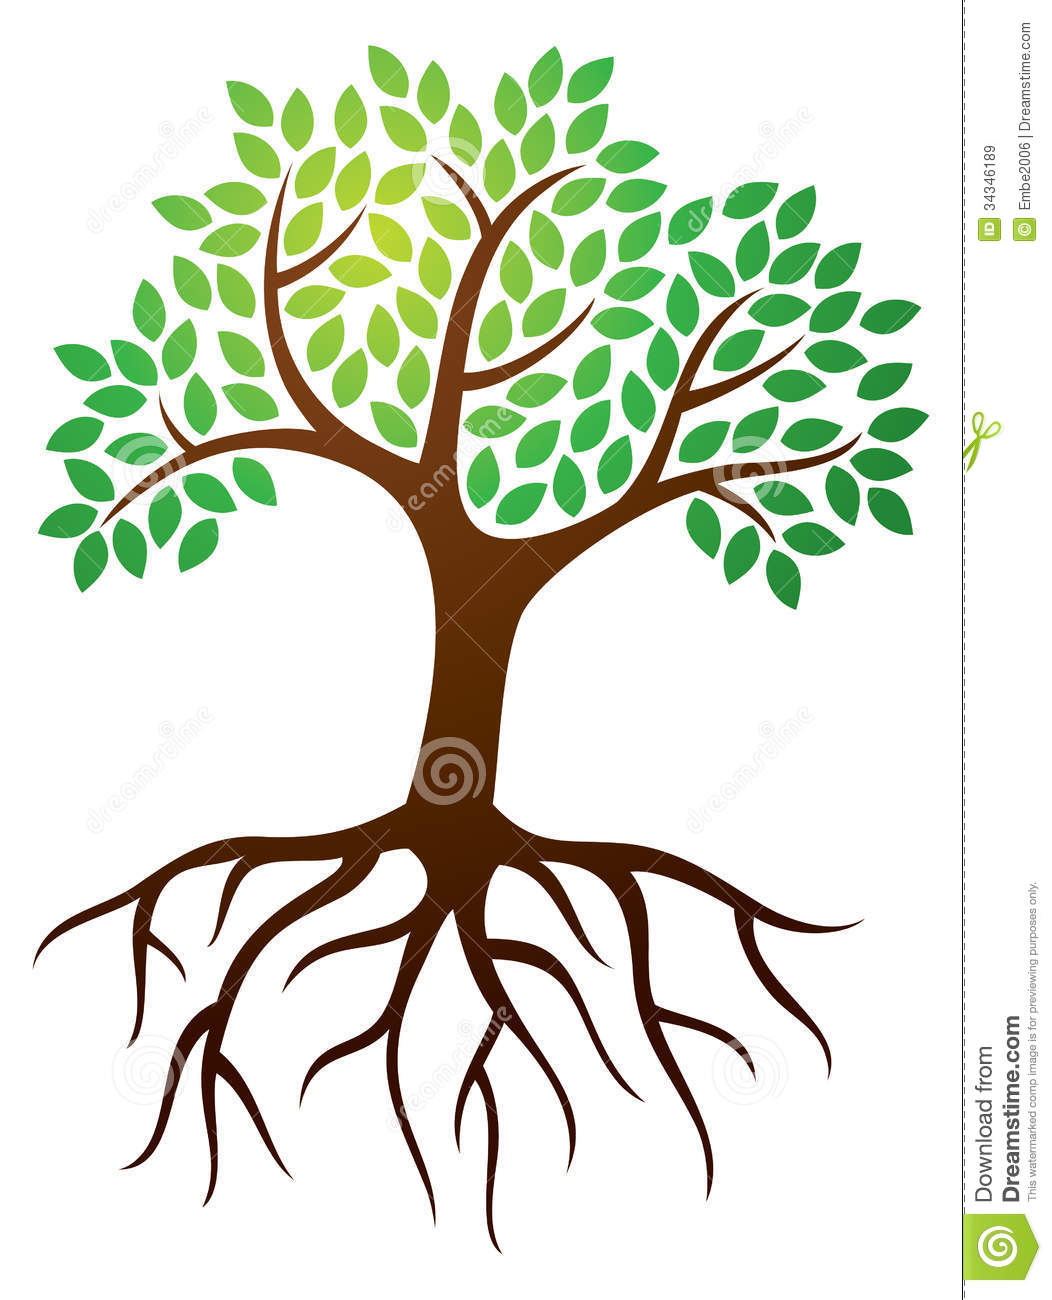 Trees With Roots Clipart-Trees With Roots Clipart-15